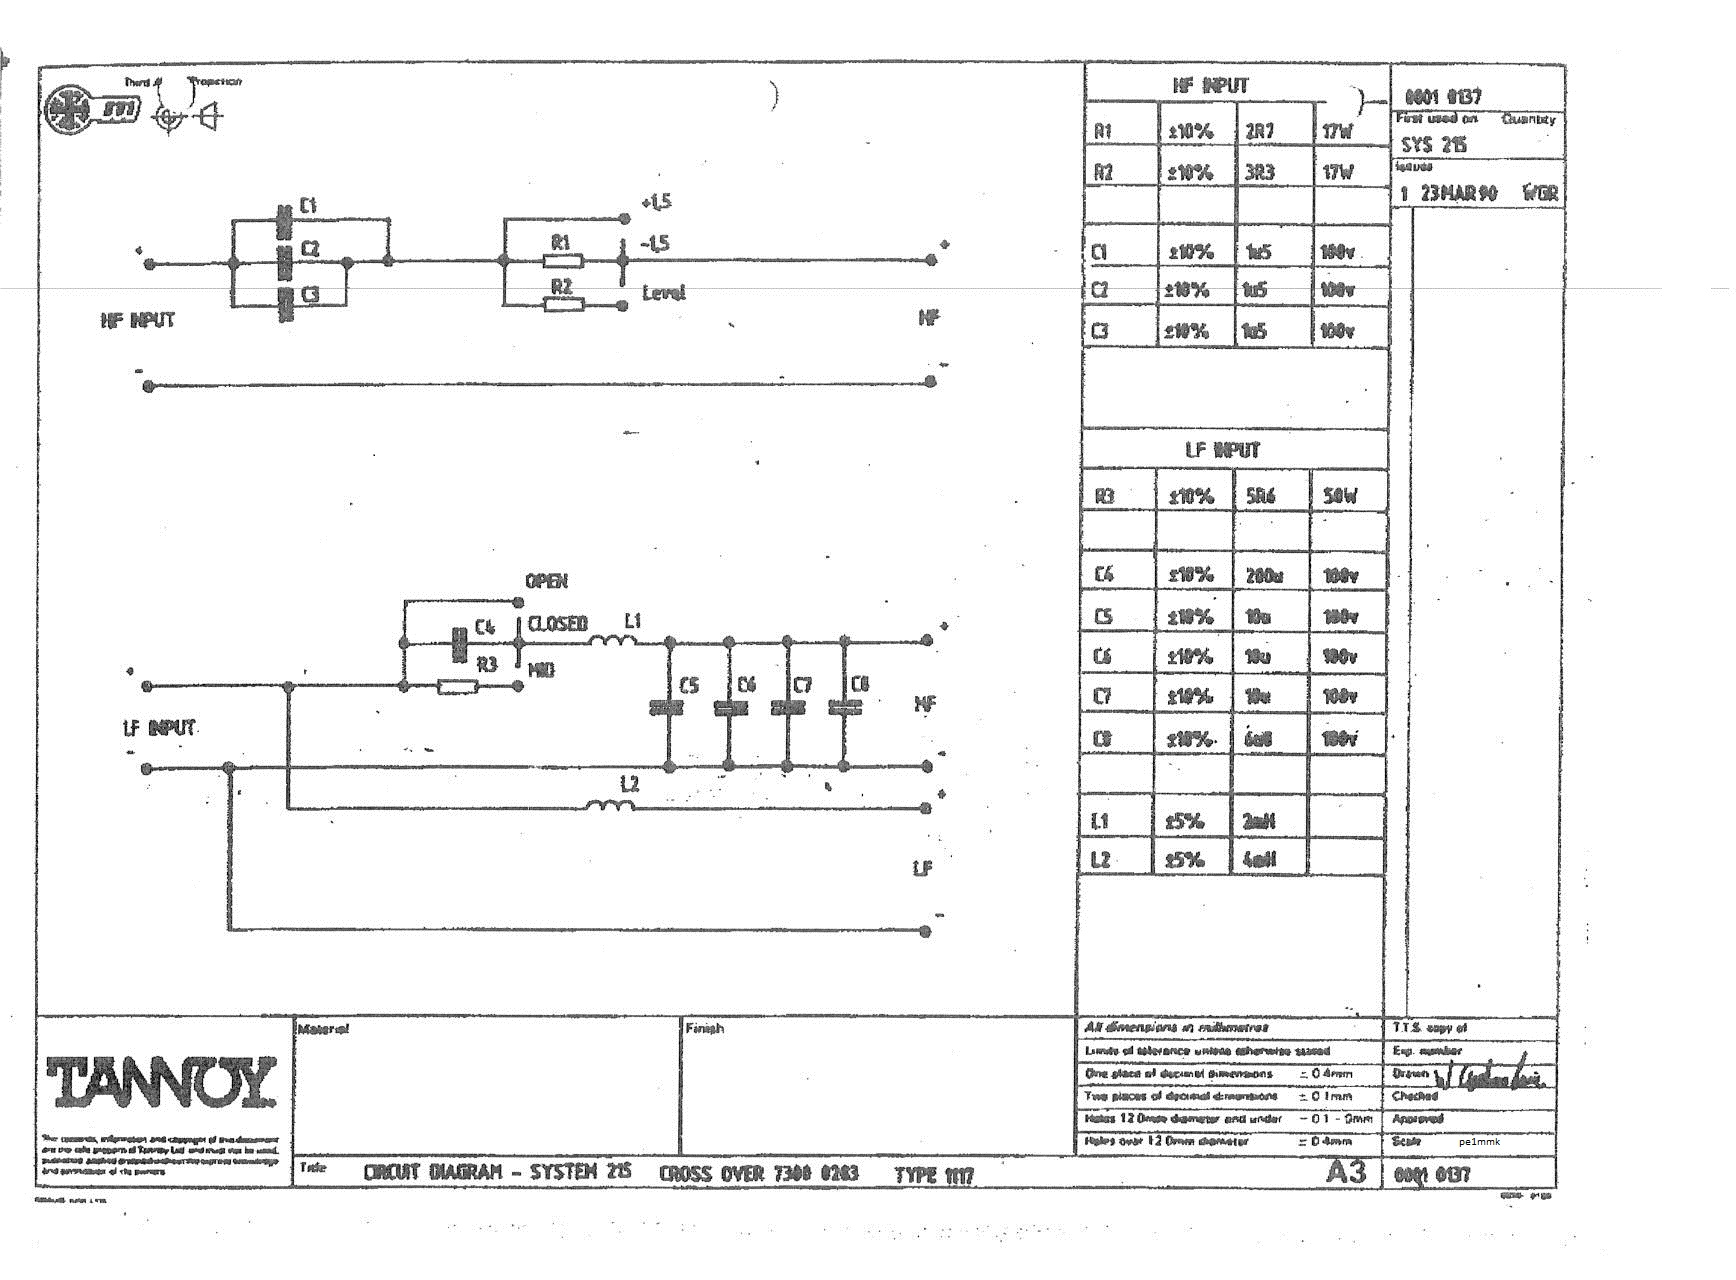 peavey t 60 wiring diagram peavey t-60 wiring diagram peavey bass guitar wiring diagram